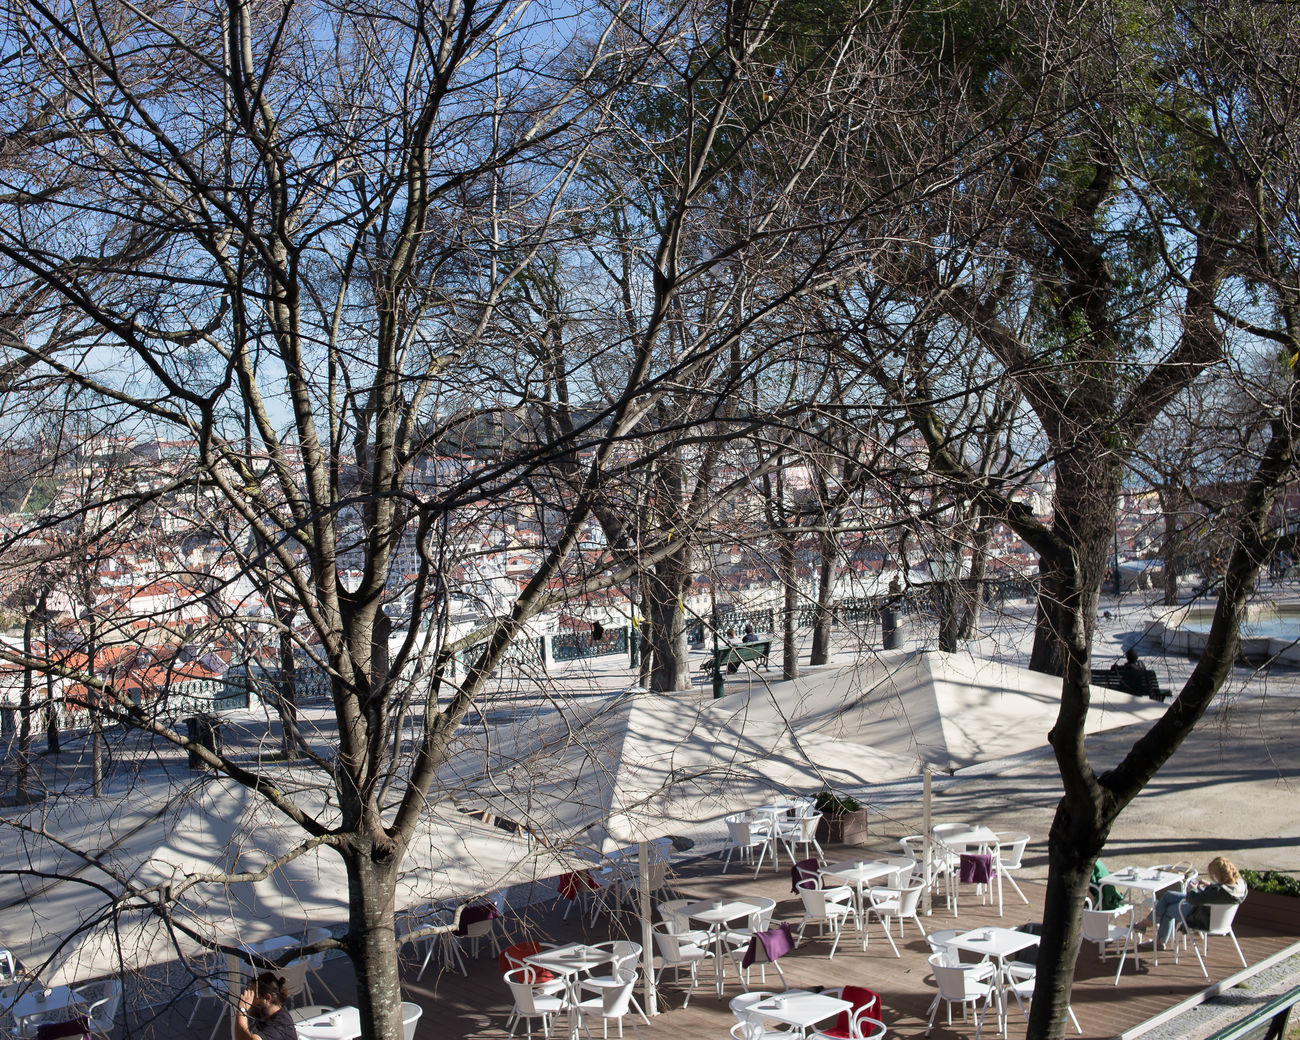 beautiful portugal Adult Adults Only Architecture Bare Tree Building Exterior City Cold Temperature Crowd Day Ice Rink Large Group Of People Nature Outdoors People Sky Snow Tree Winter